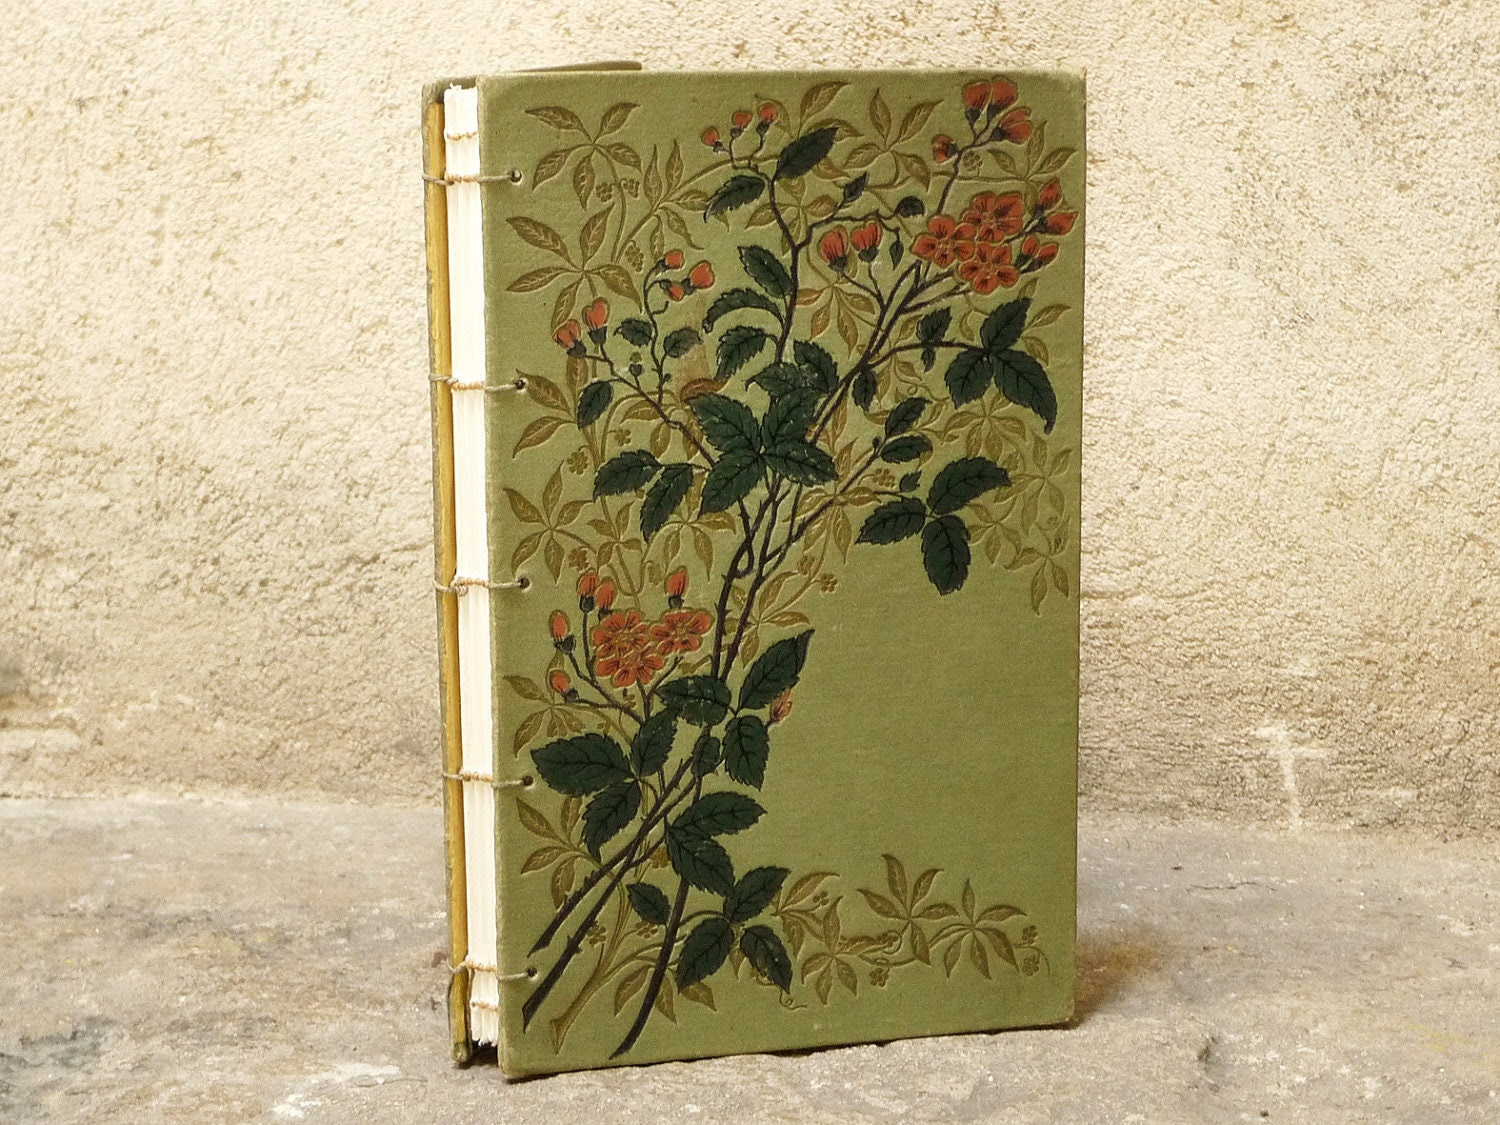 Vintage Wedding Guest Books Made to Order Using Old French Books SAMPLE LISTING